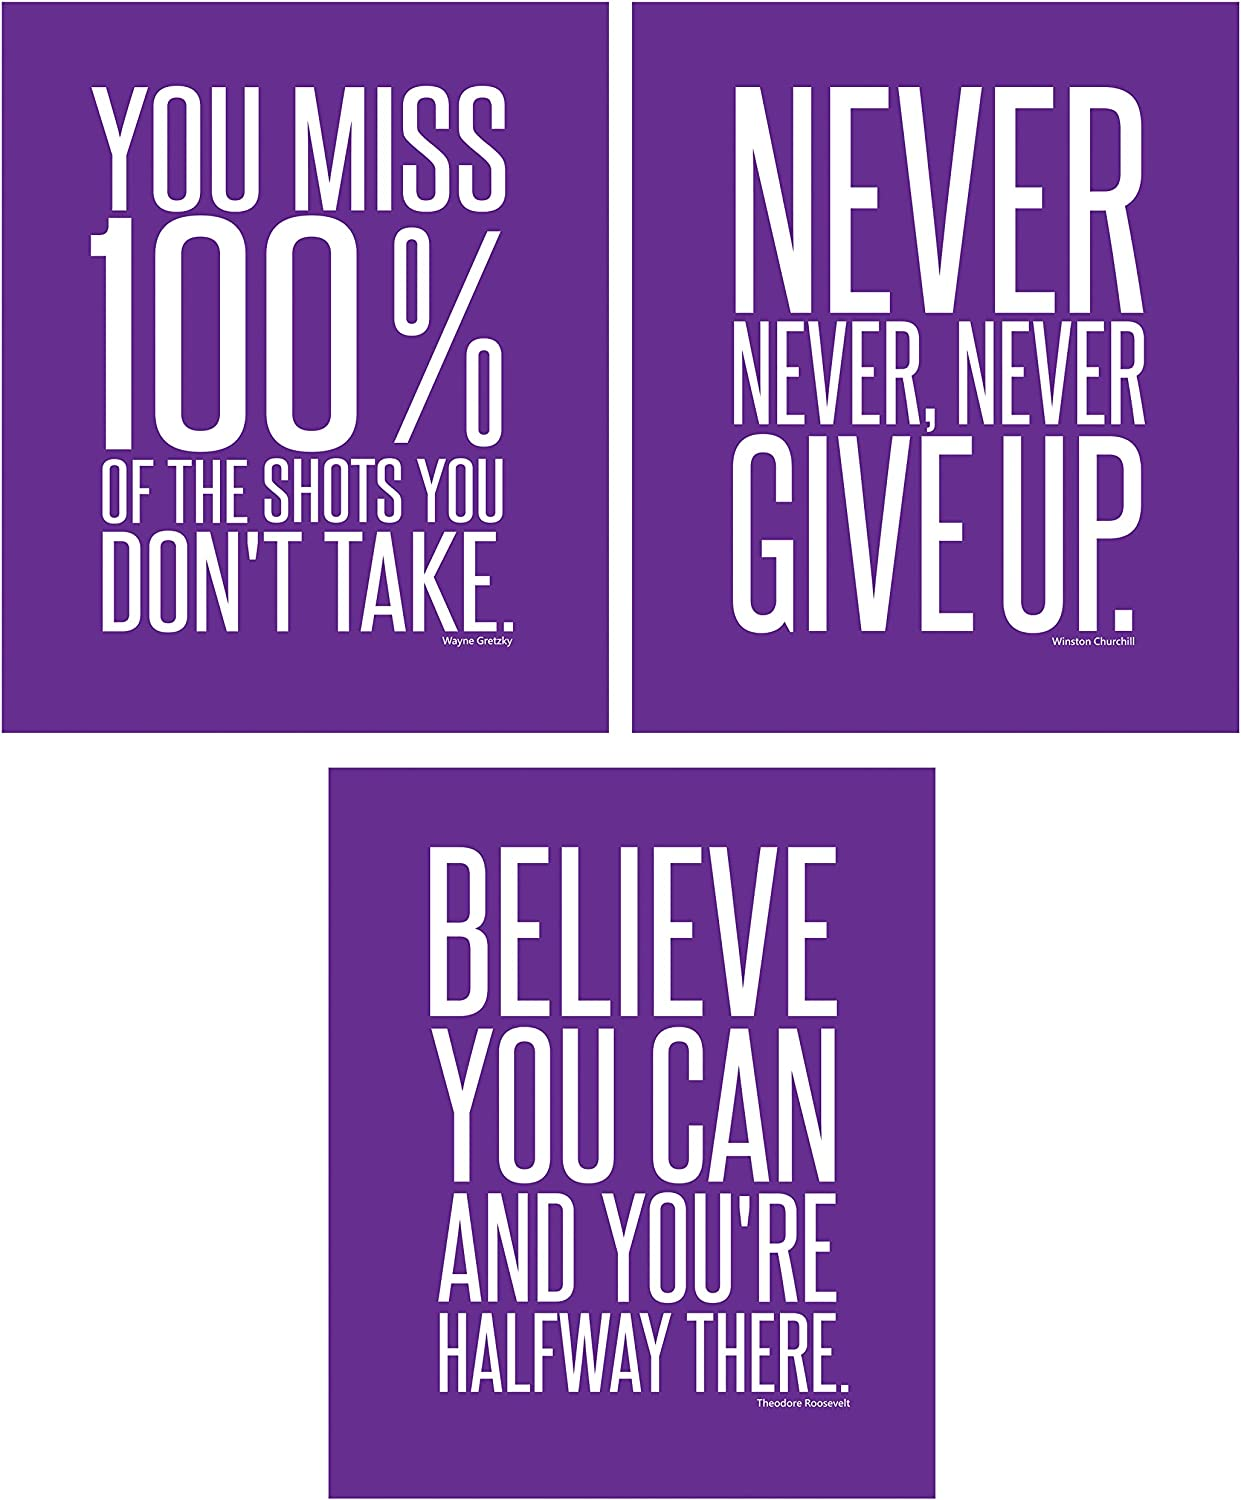 Don't Give Up Wall Art Decor of Famous Quotes for Teen Boy Girl Student Entrepeneur | Decorations and Accessories for Gym Bedroom Office Classroom | Prints Posters Phrases Sayings Photos and Signs of Positive Affirmations | Morado Purpura (8 x 10 Purple)